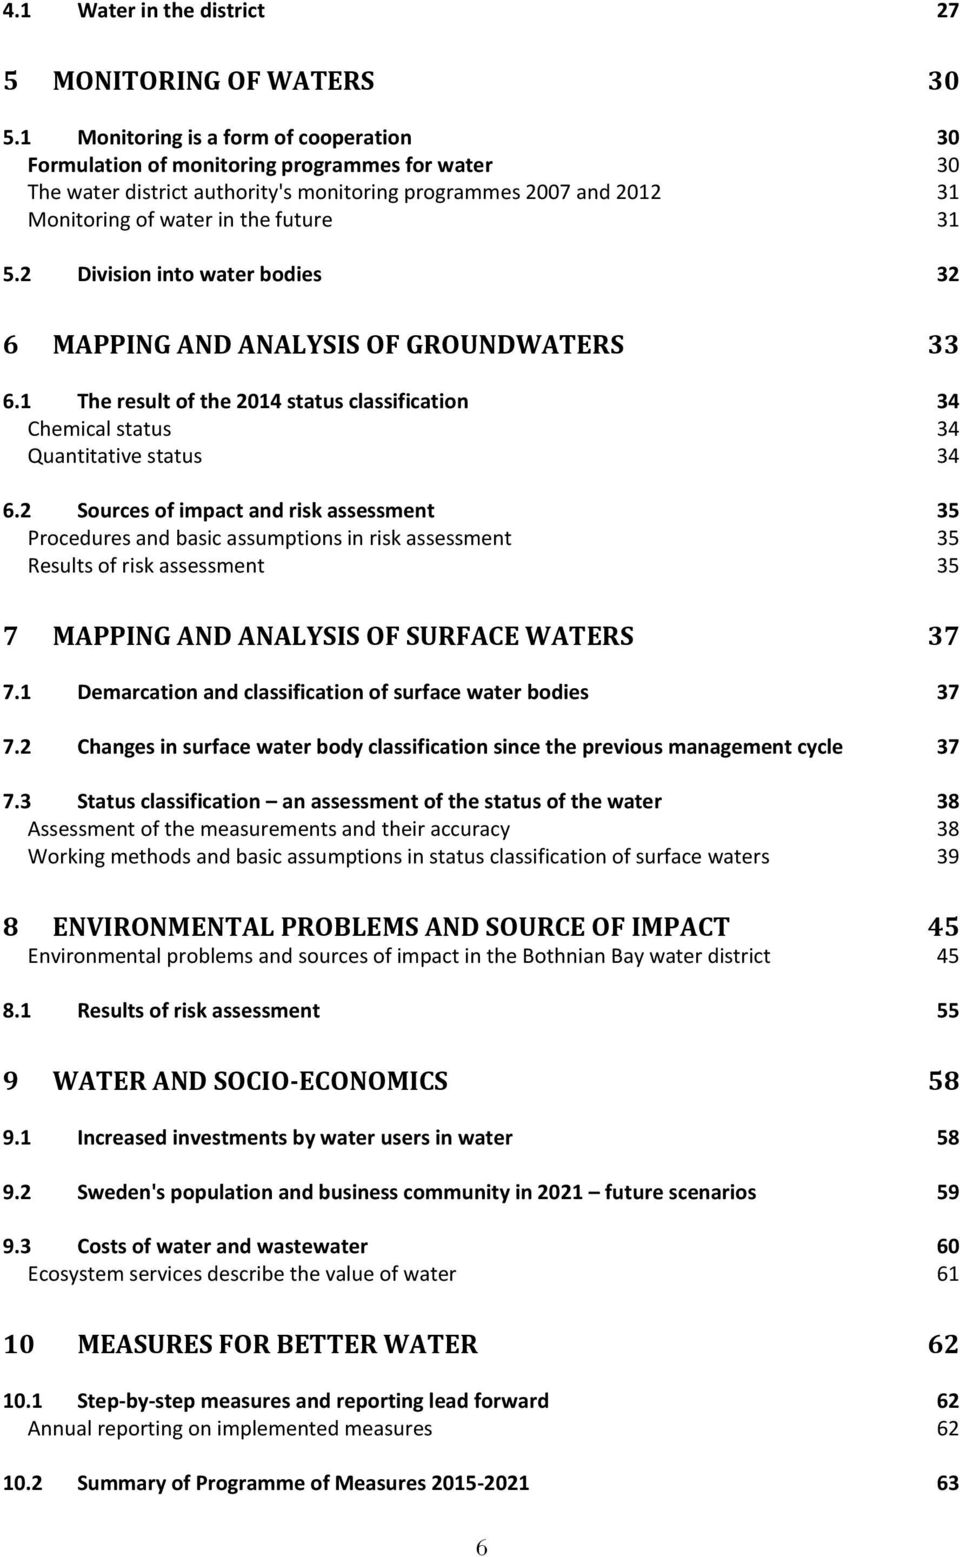 2 Division into water bodies 32 6 MAPPING AND ANALYSIS OF GROUNDWATERS 33 6.1 The result of the 2014 status classification 34 Chemical status 34 Quantitative status 34 6.